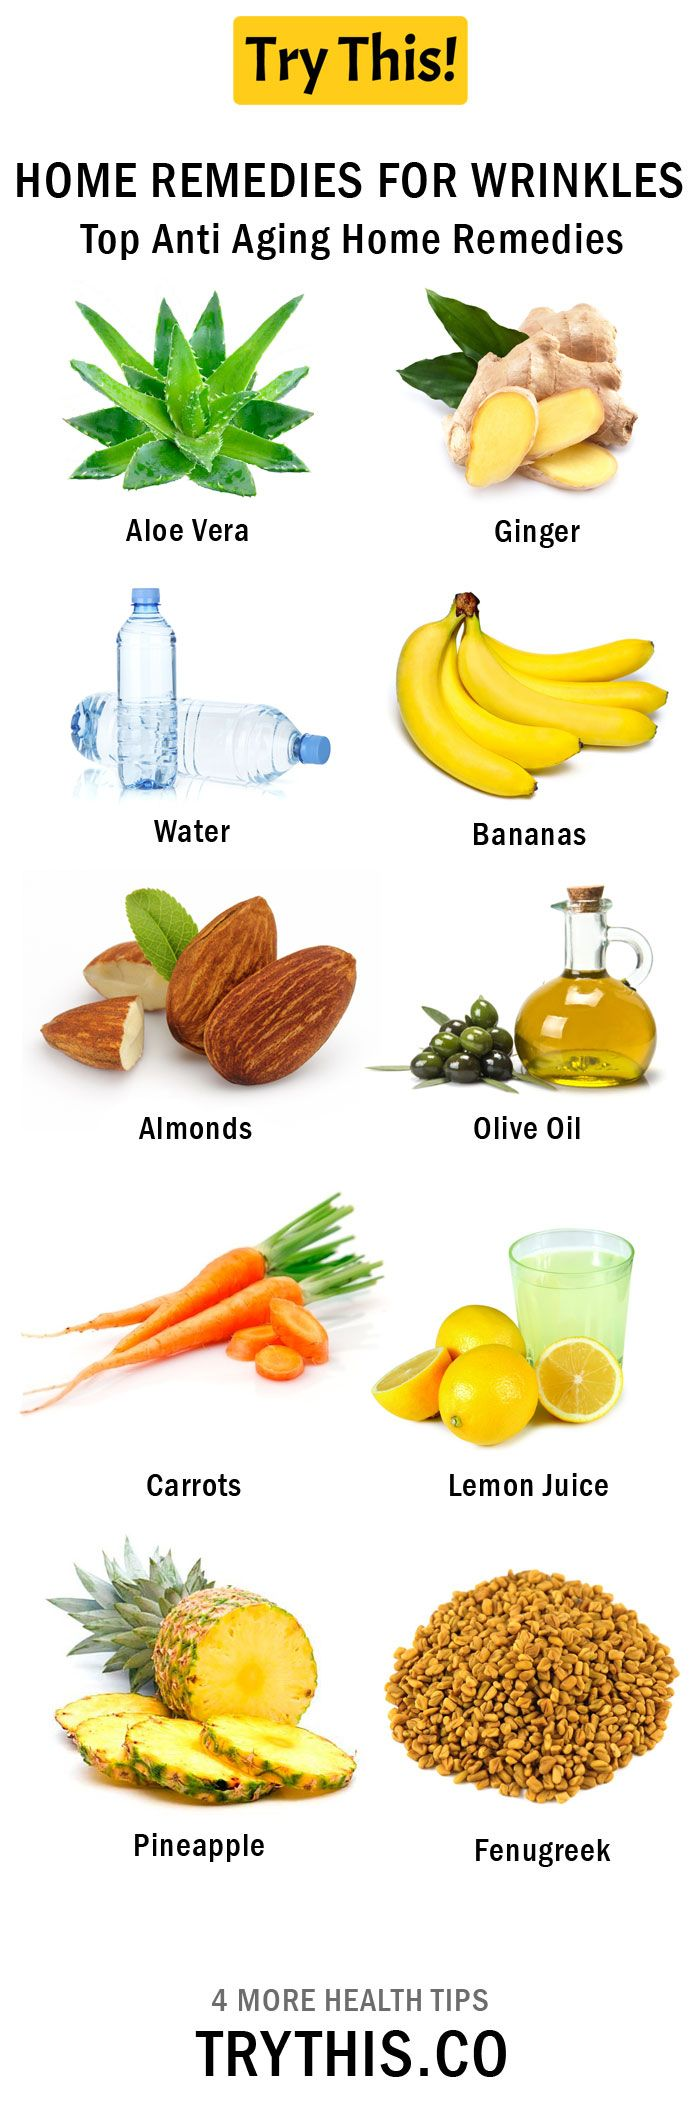 Home Remedies For Wrinkles Home Remedies For Wrinkles Anti